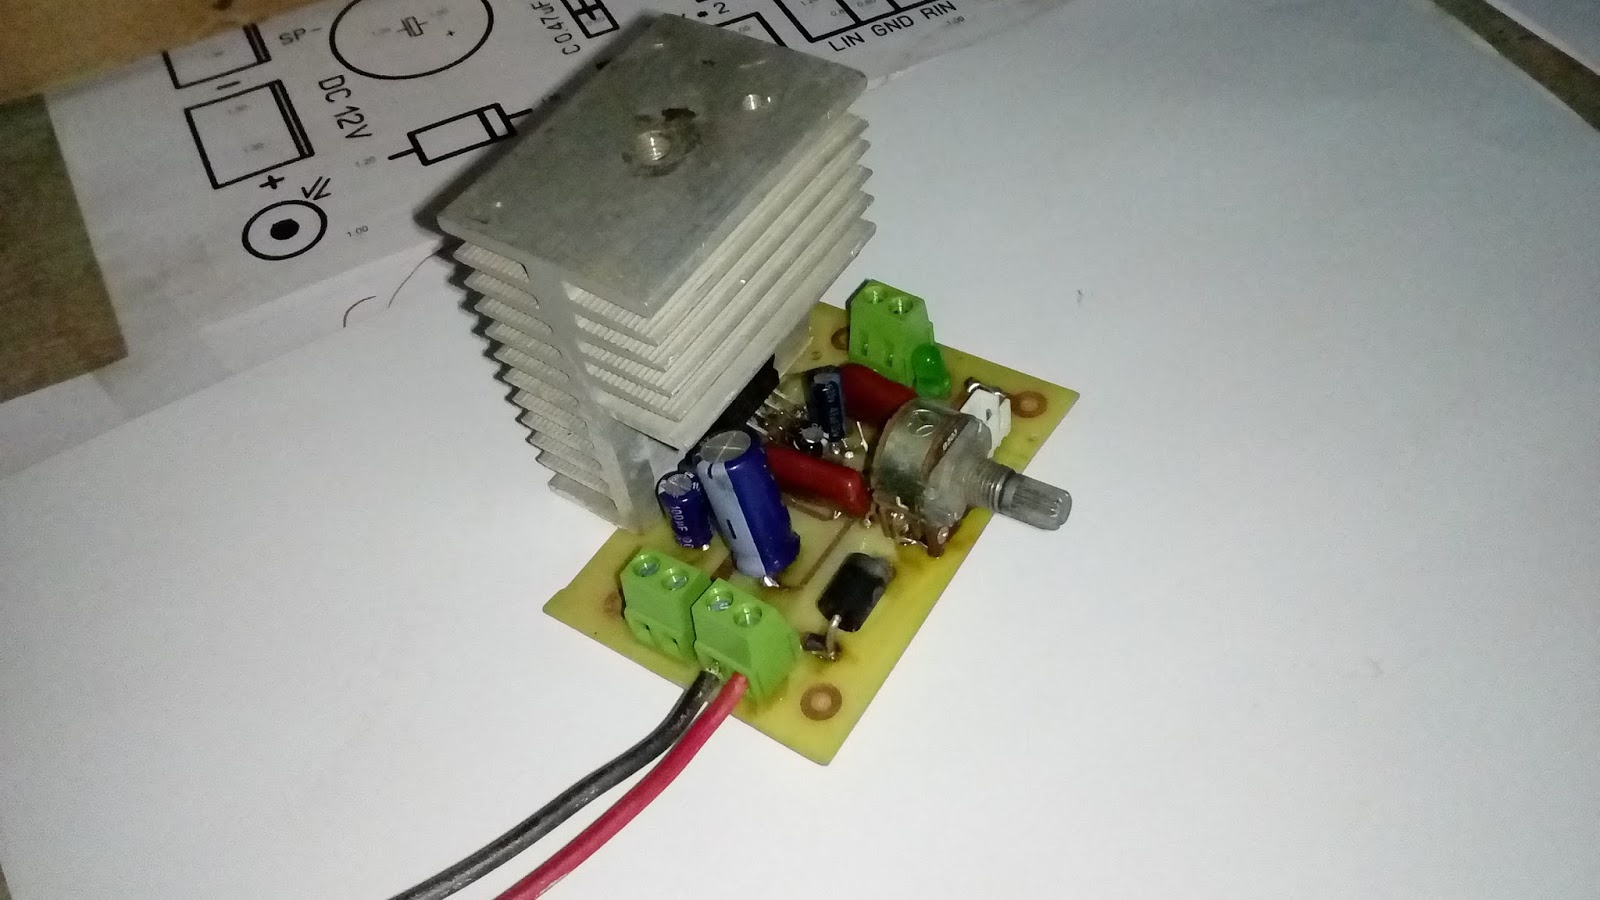 TDA7377 Amplifier Circuit (12V Stereo 30W + 30W)